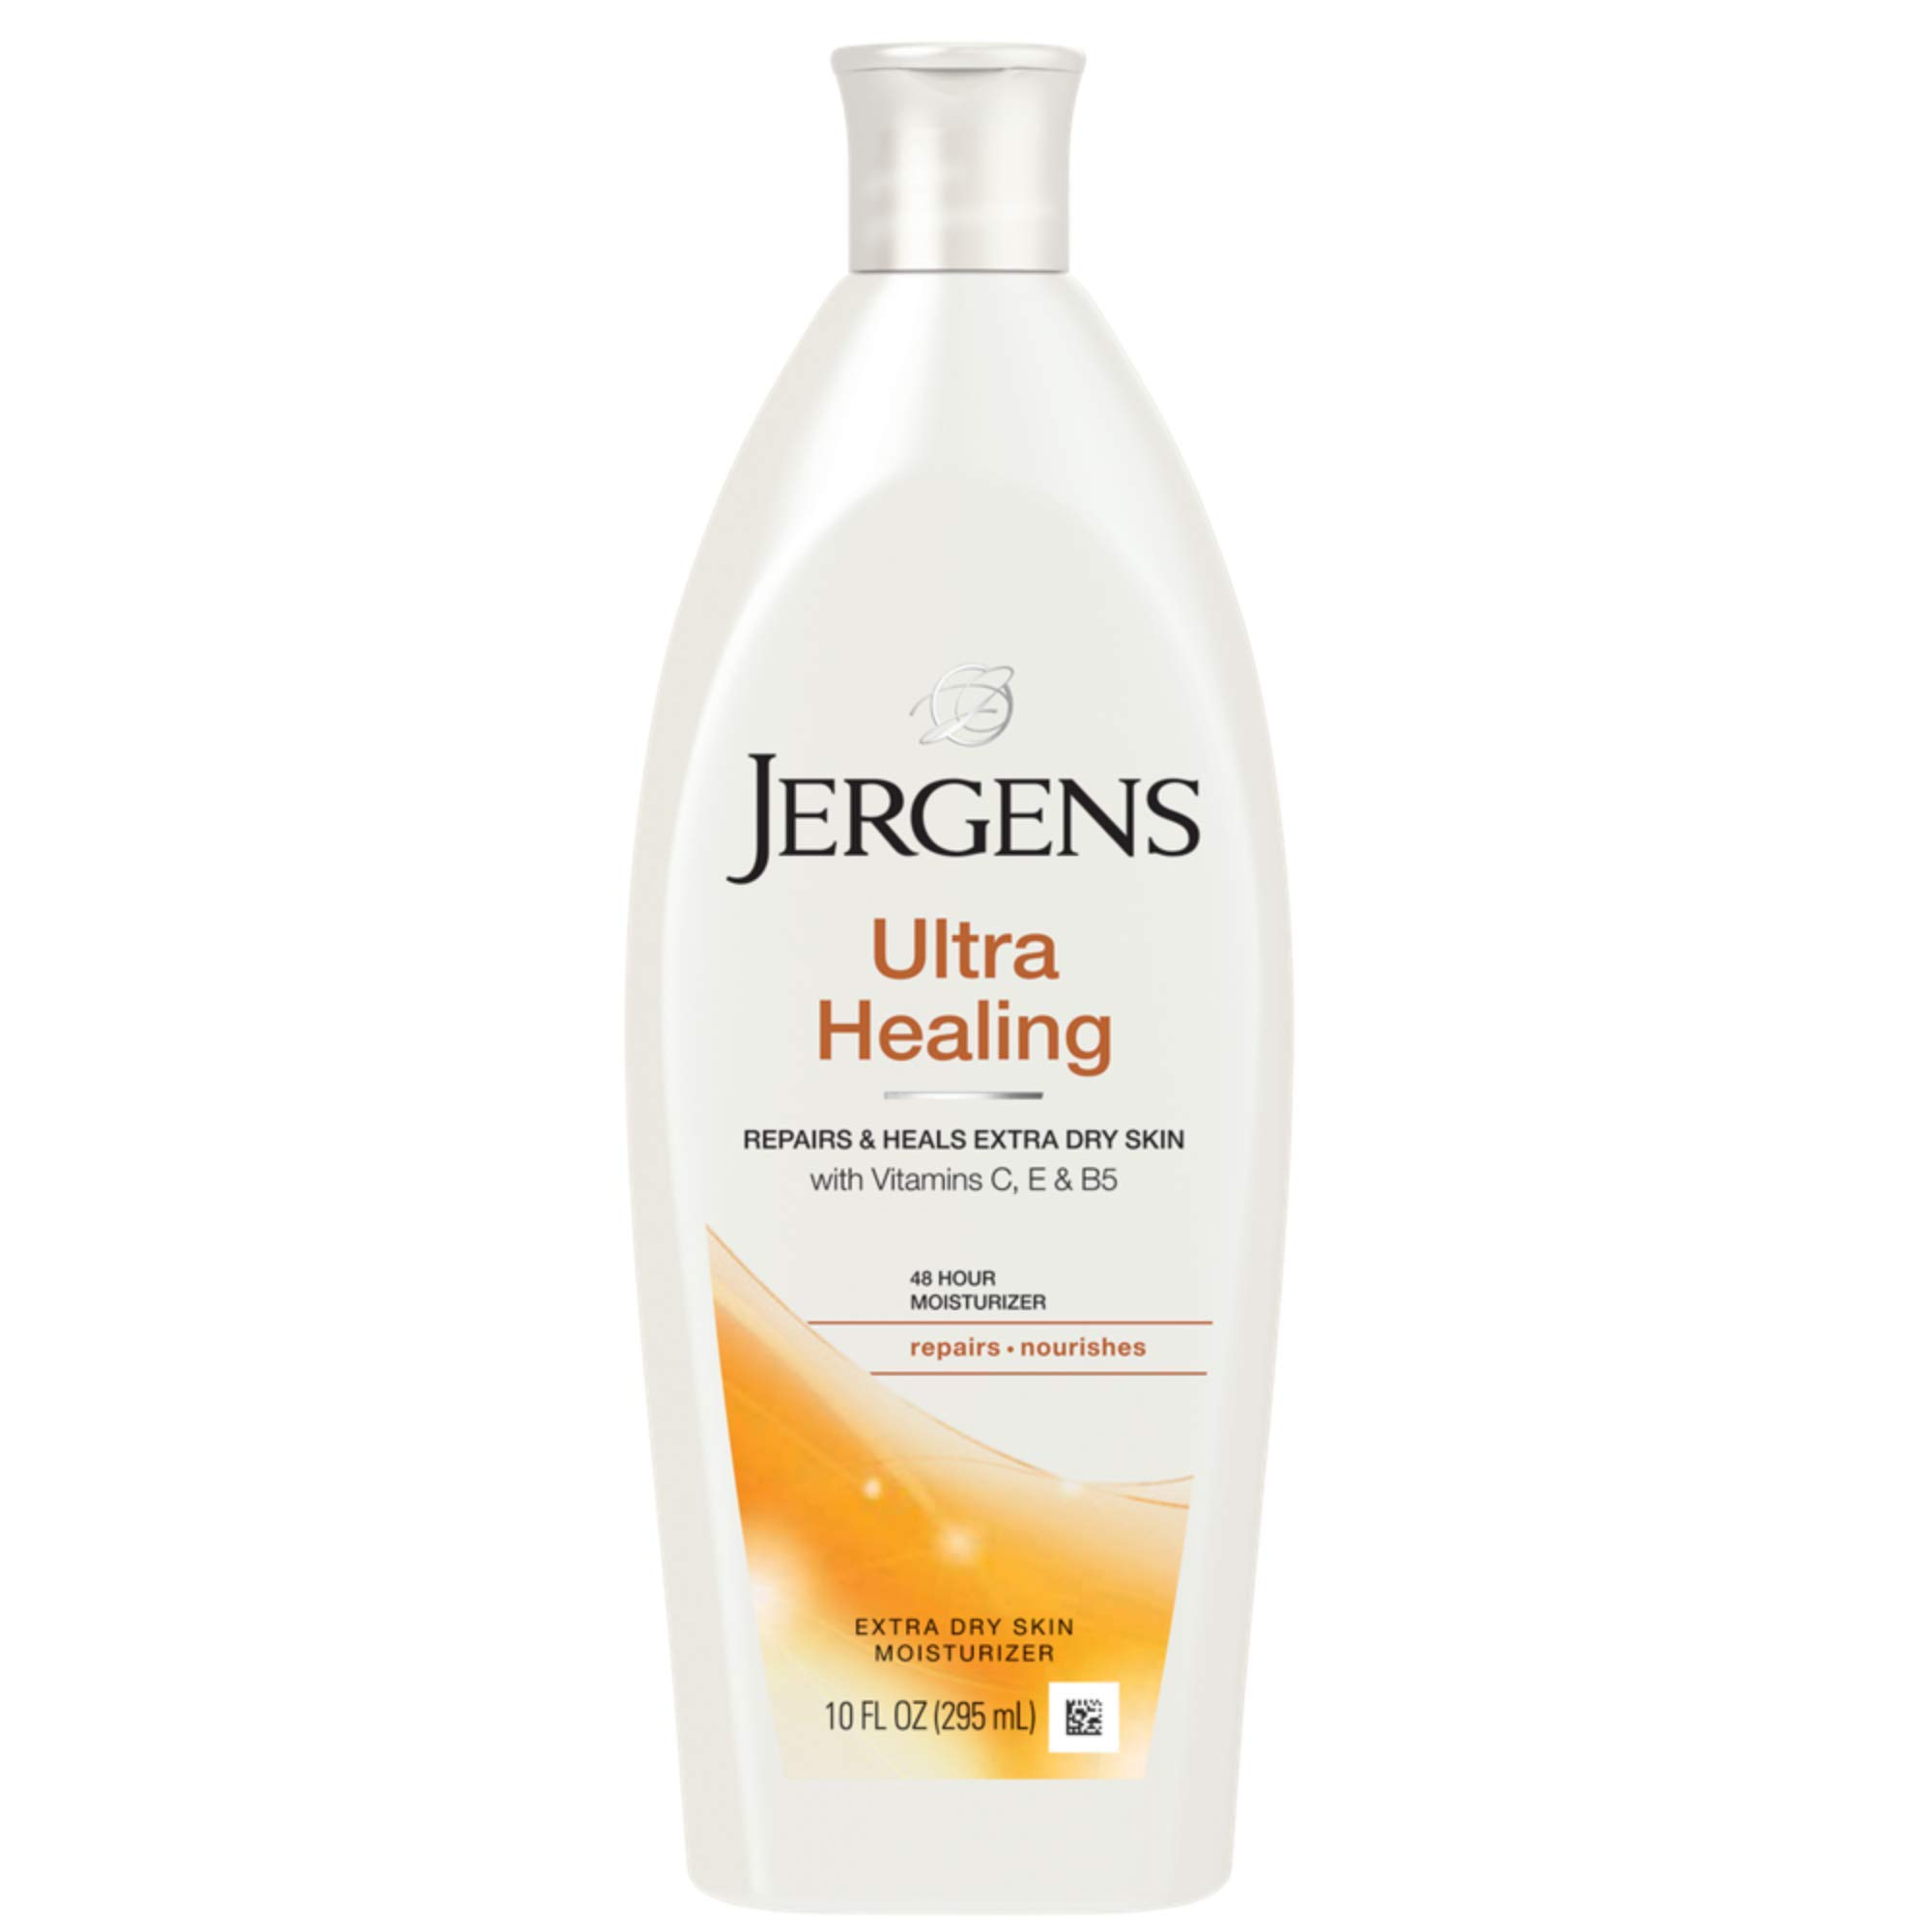 Jergens Ultra Healing Dry Skin Moisturizer, Body and Hand Lotion, for Absorption into Extra Dry Skin, 10 Ounce, with HYDRALUCENCE blend, Vitamins C, E, and B5